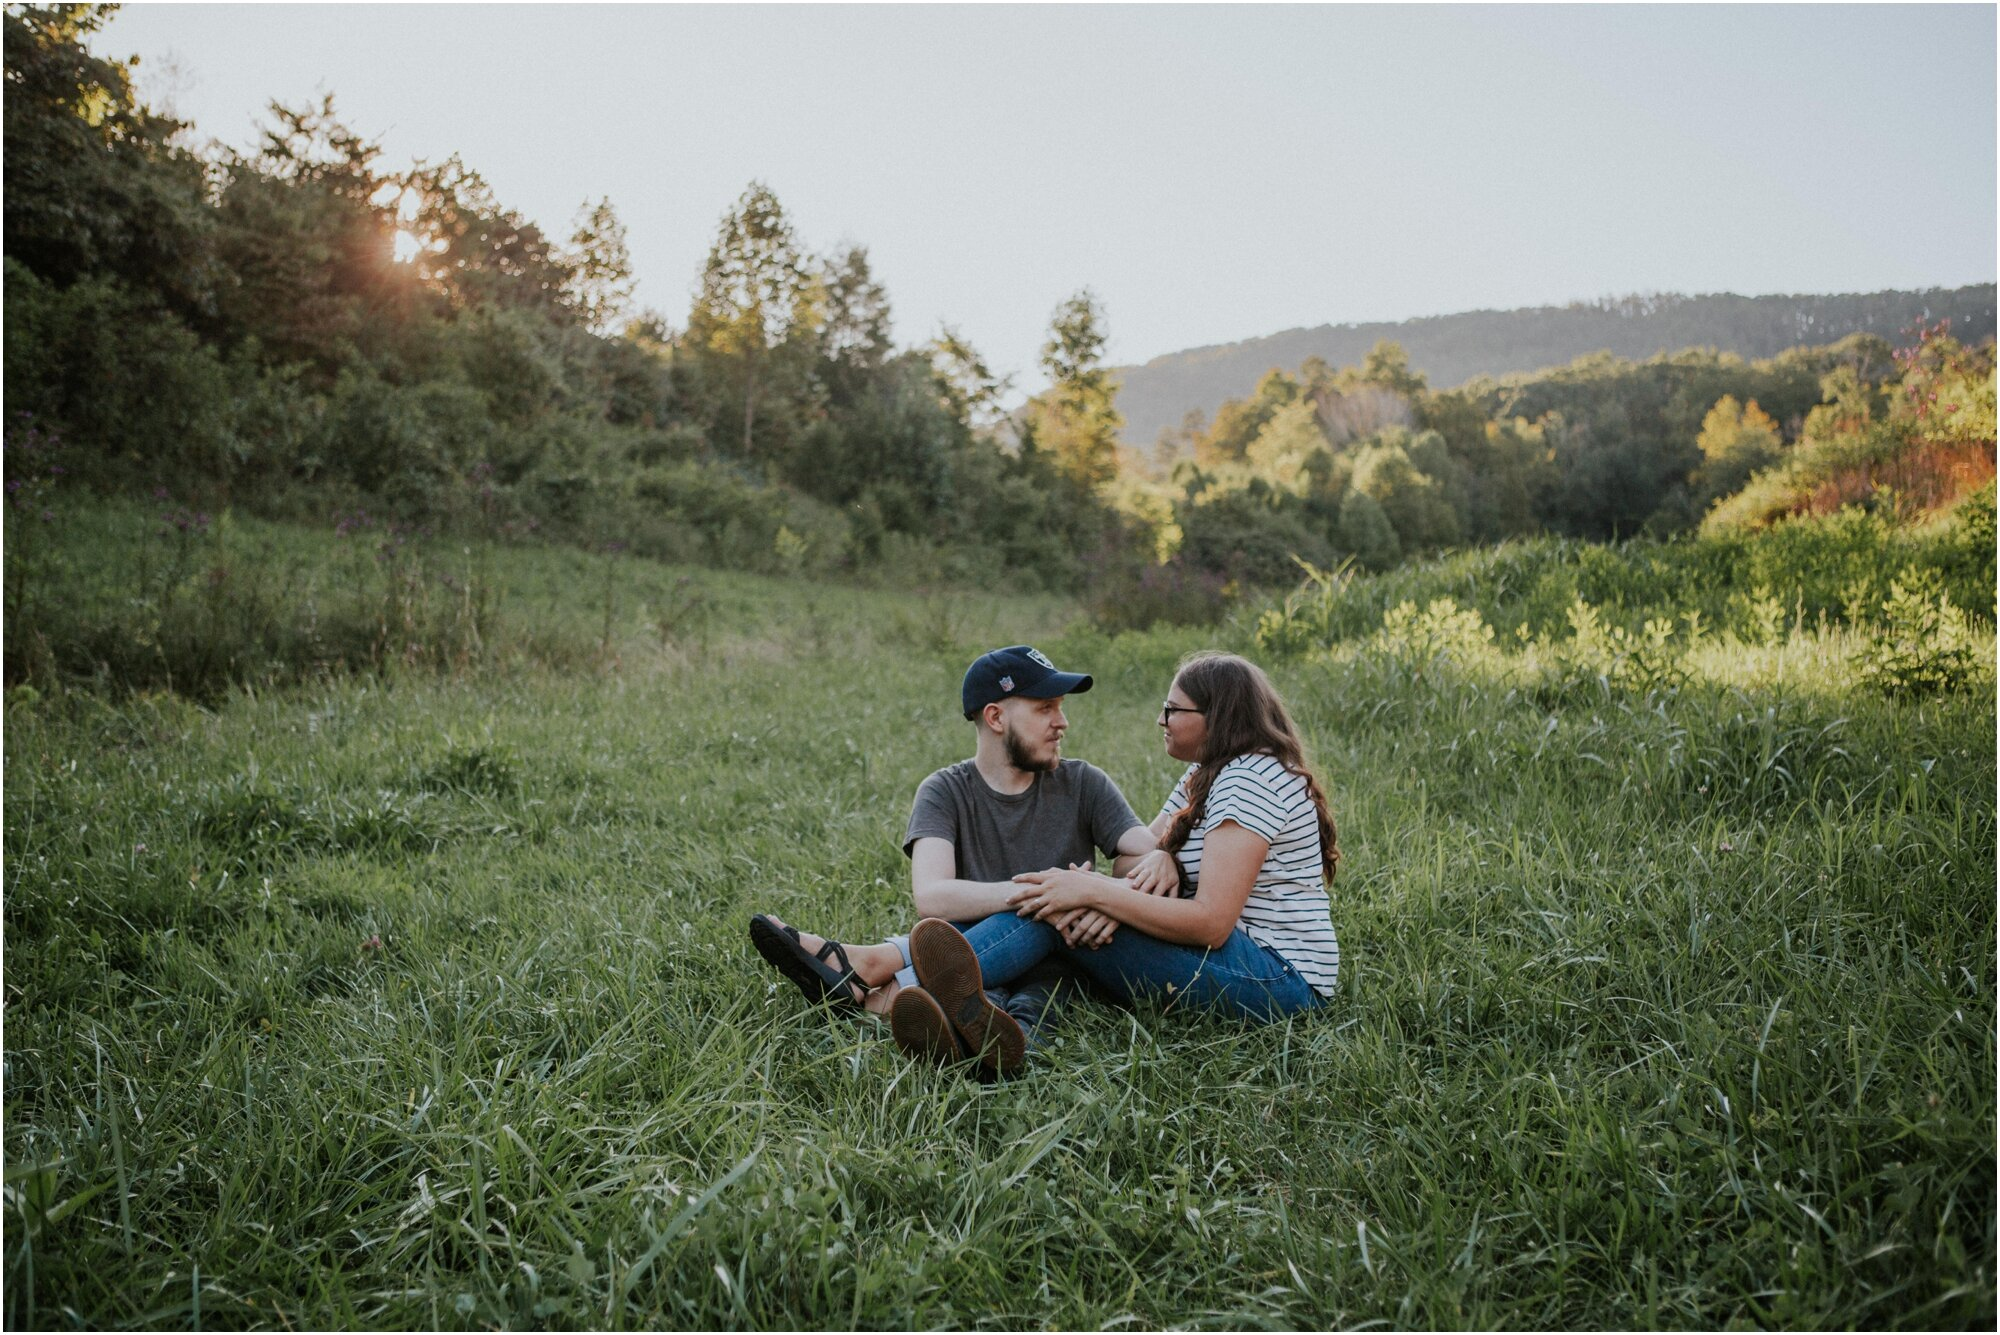 kingsport-tennessee-backyard-pond-bays-mountain-summer-engagement-session_0013.jpg